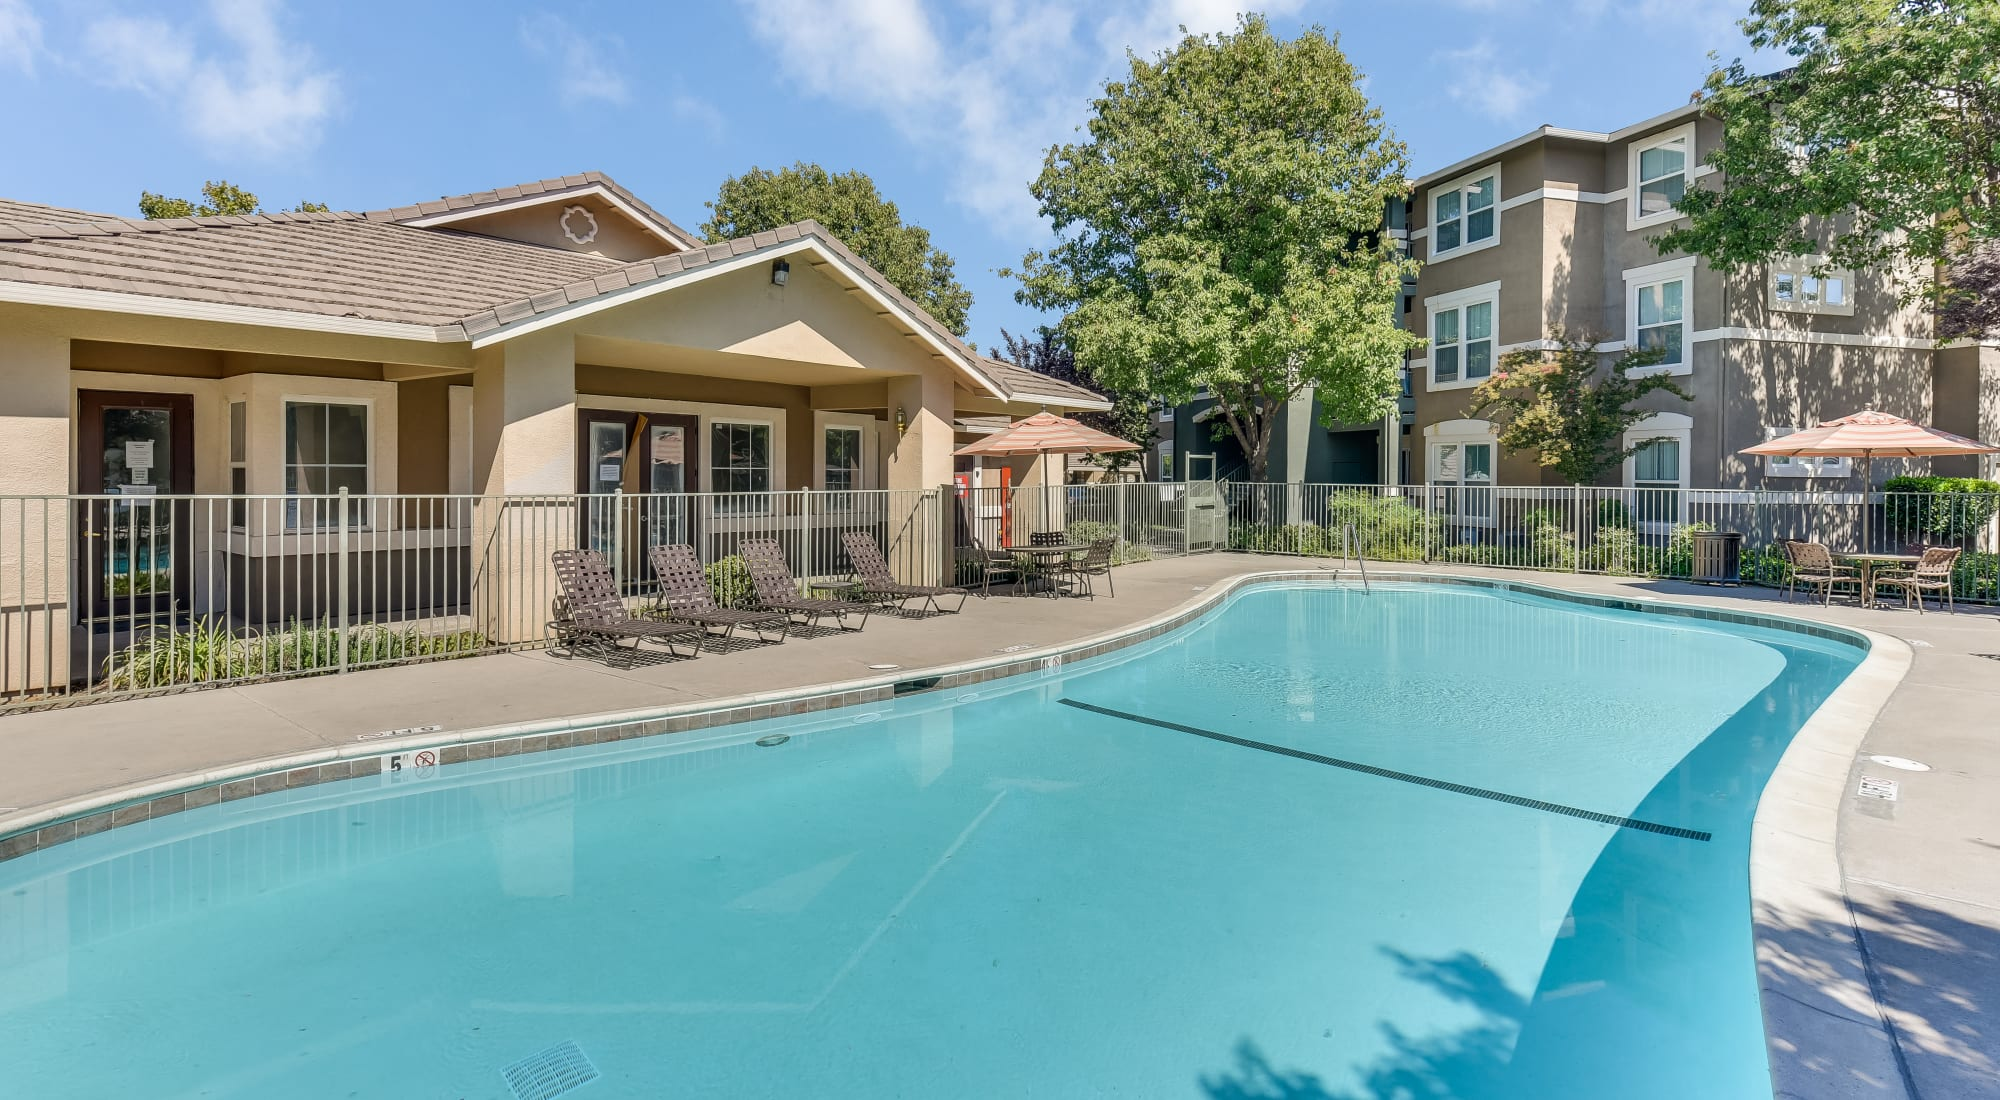 Natomas Park Apartments features a relaxing pool and hot tub, in Sacramento, California